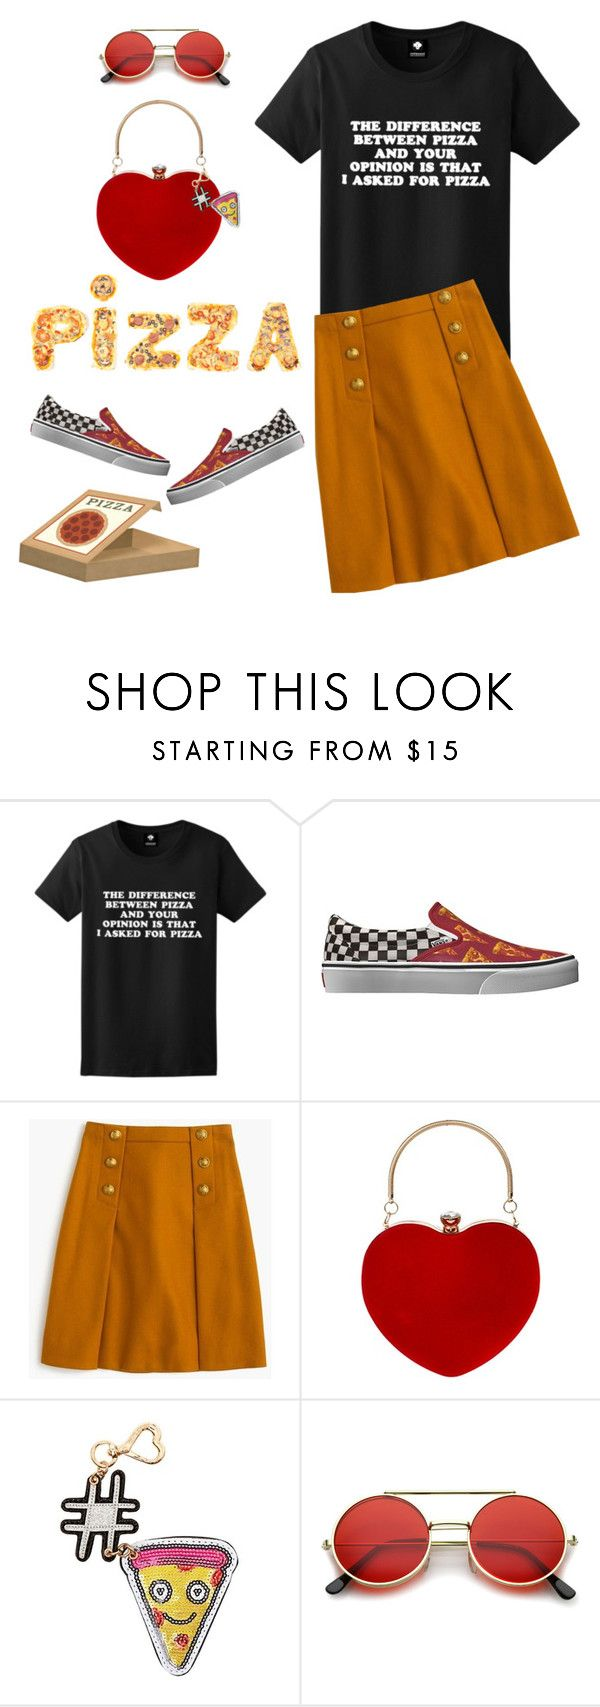 """""""Happy National Pizza Day!! 🍕"""" by musicfriend1 ❤ liked on Polyvore featuring Vans, J.Crew, Betsey Johnson, ZeroUV, lovethis, Tshirt, pizza and nationalpizzaday"""